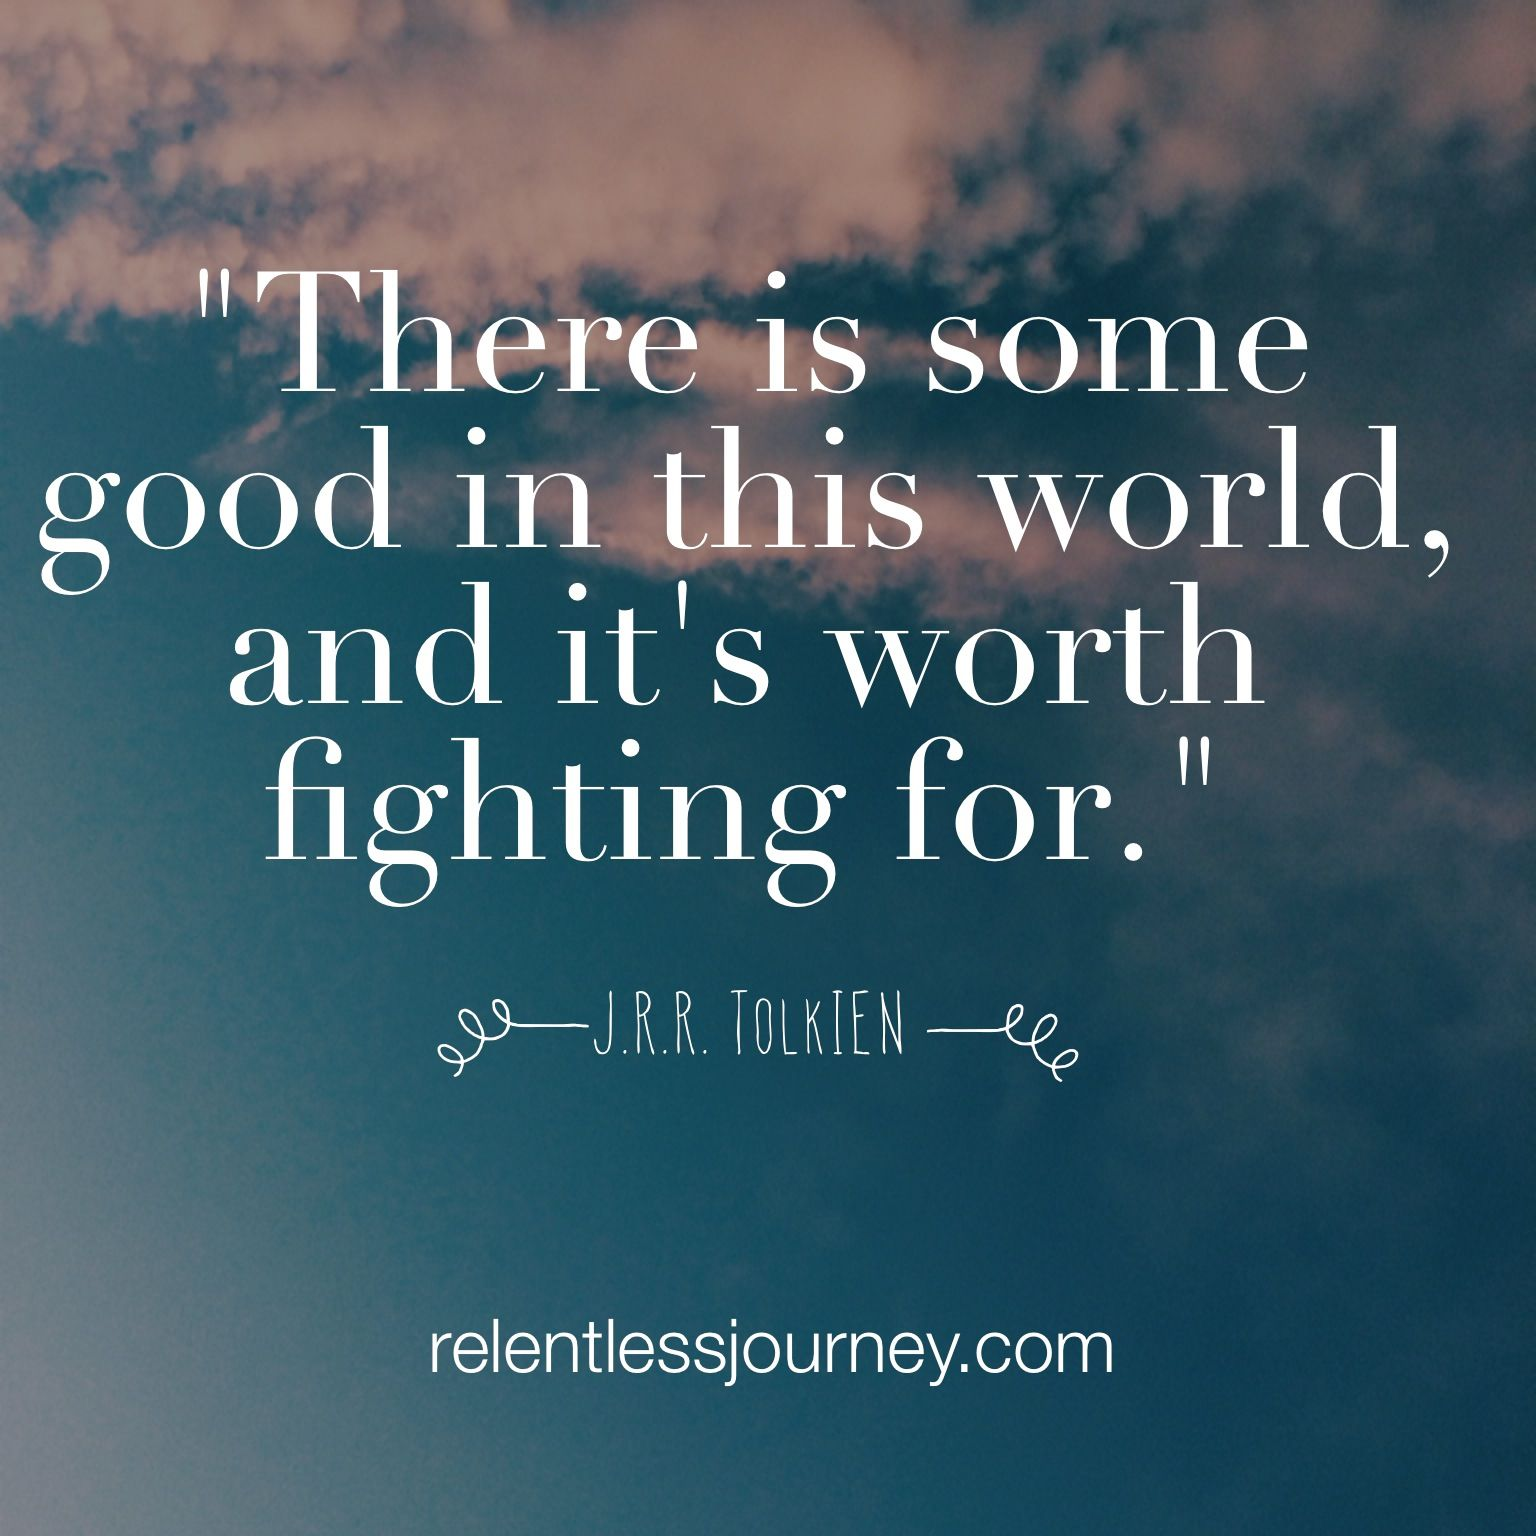 Jrr Tolkien Quotes About Life There Is Some Good In This World And It's Worth Fighting For